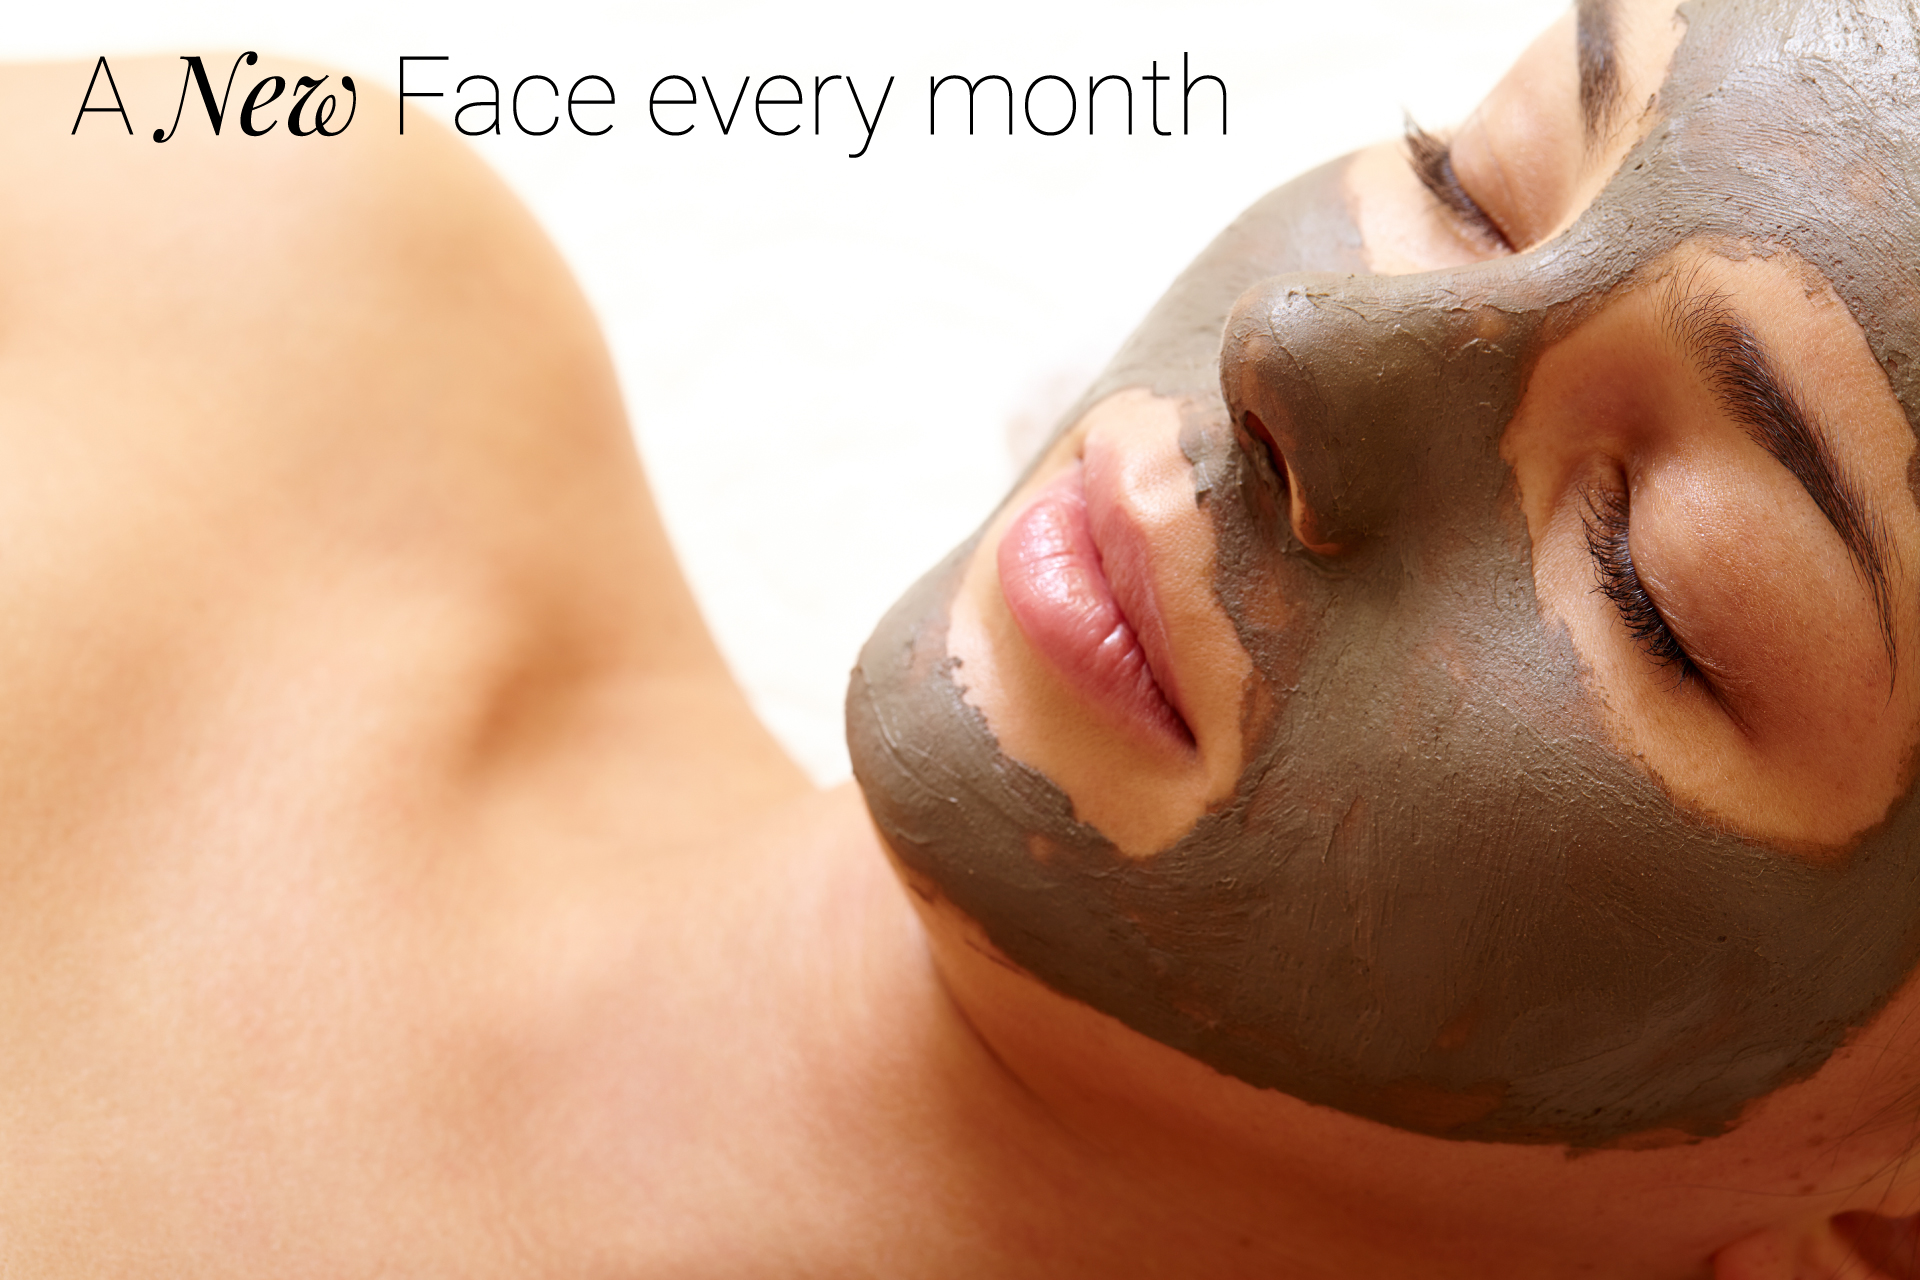 A-new-face-every-month-blog-header-v1.jpg